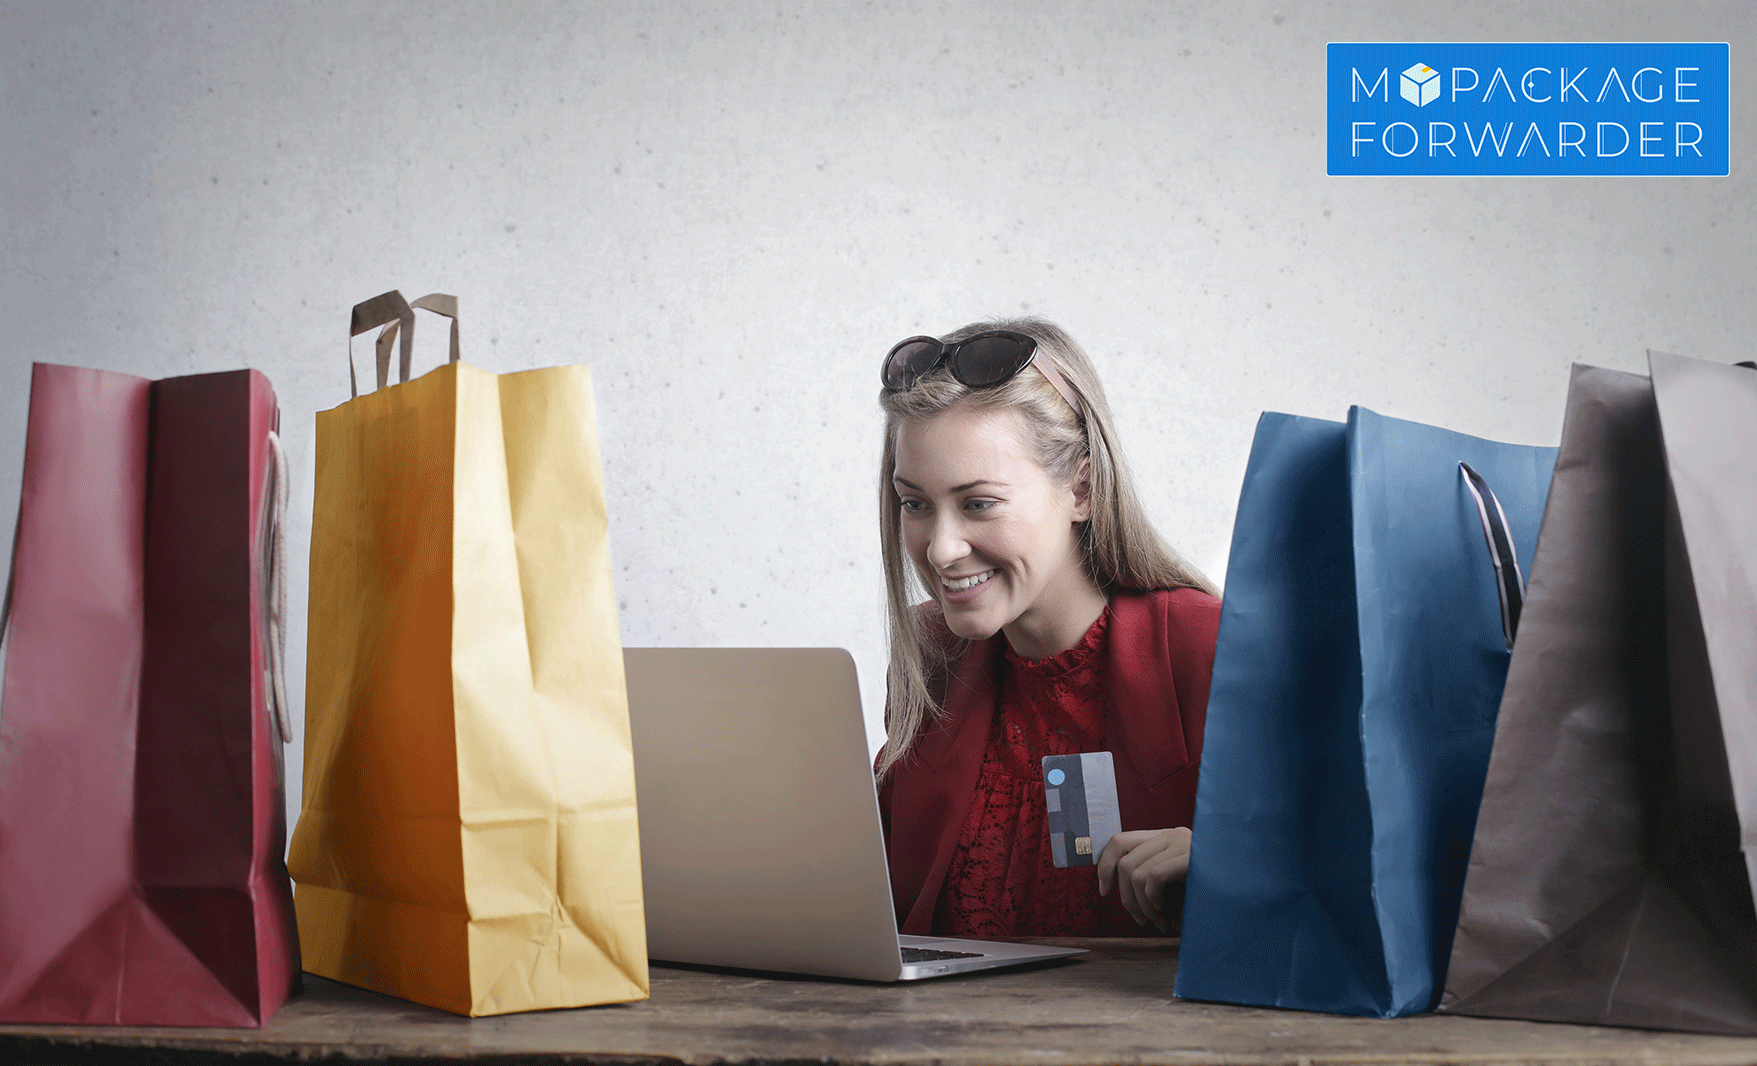 how to avail tax free shopping using My Package Forwarder